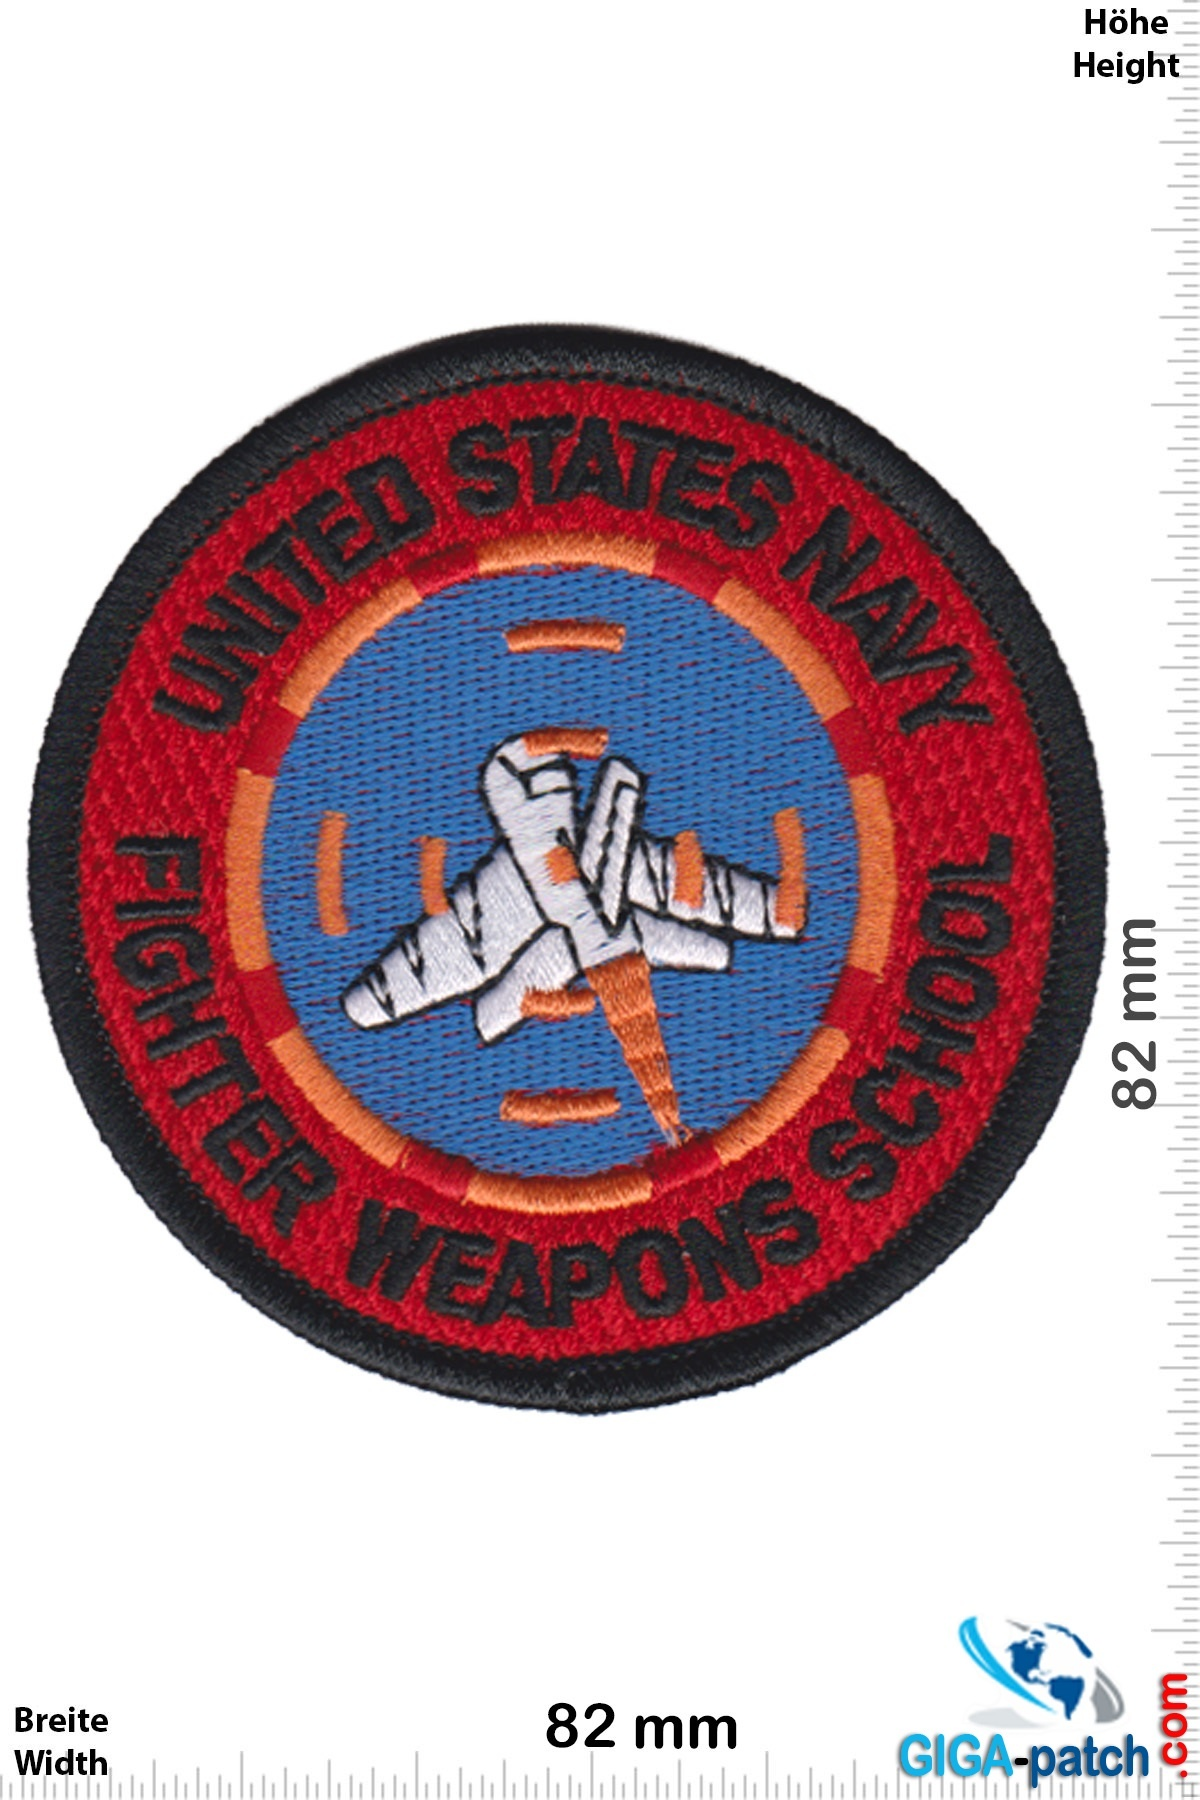 Top Gun United States Navy - Fighter Weapons School- HQ